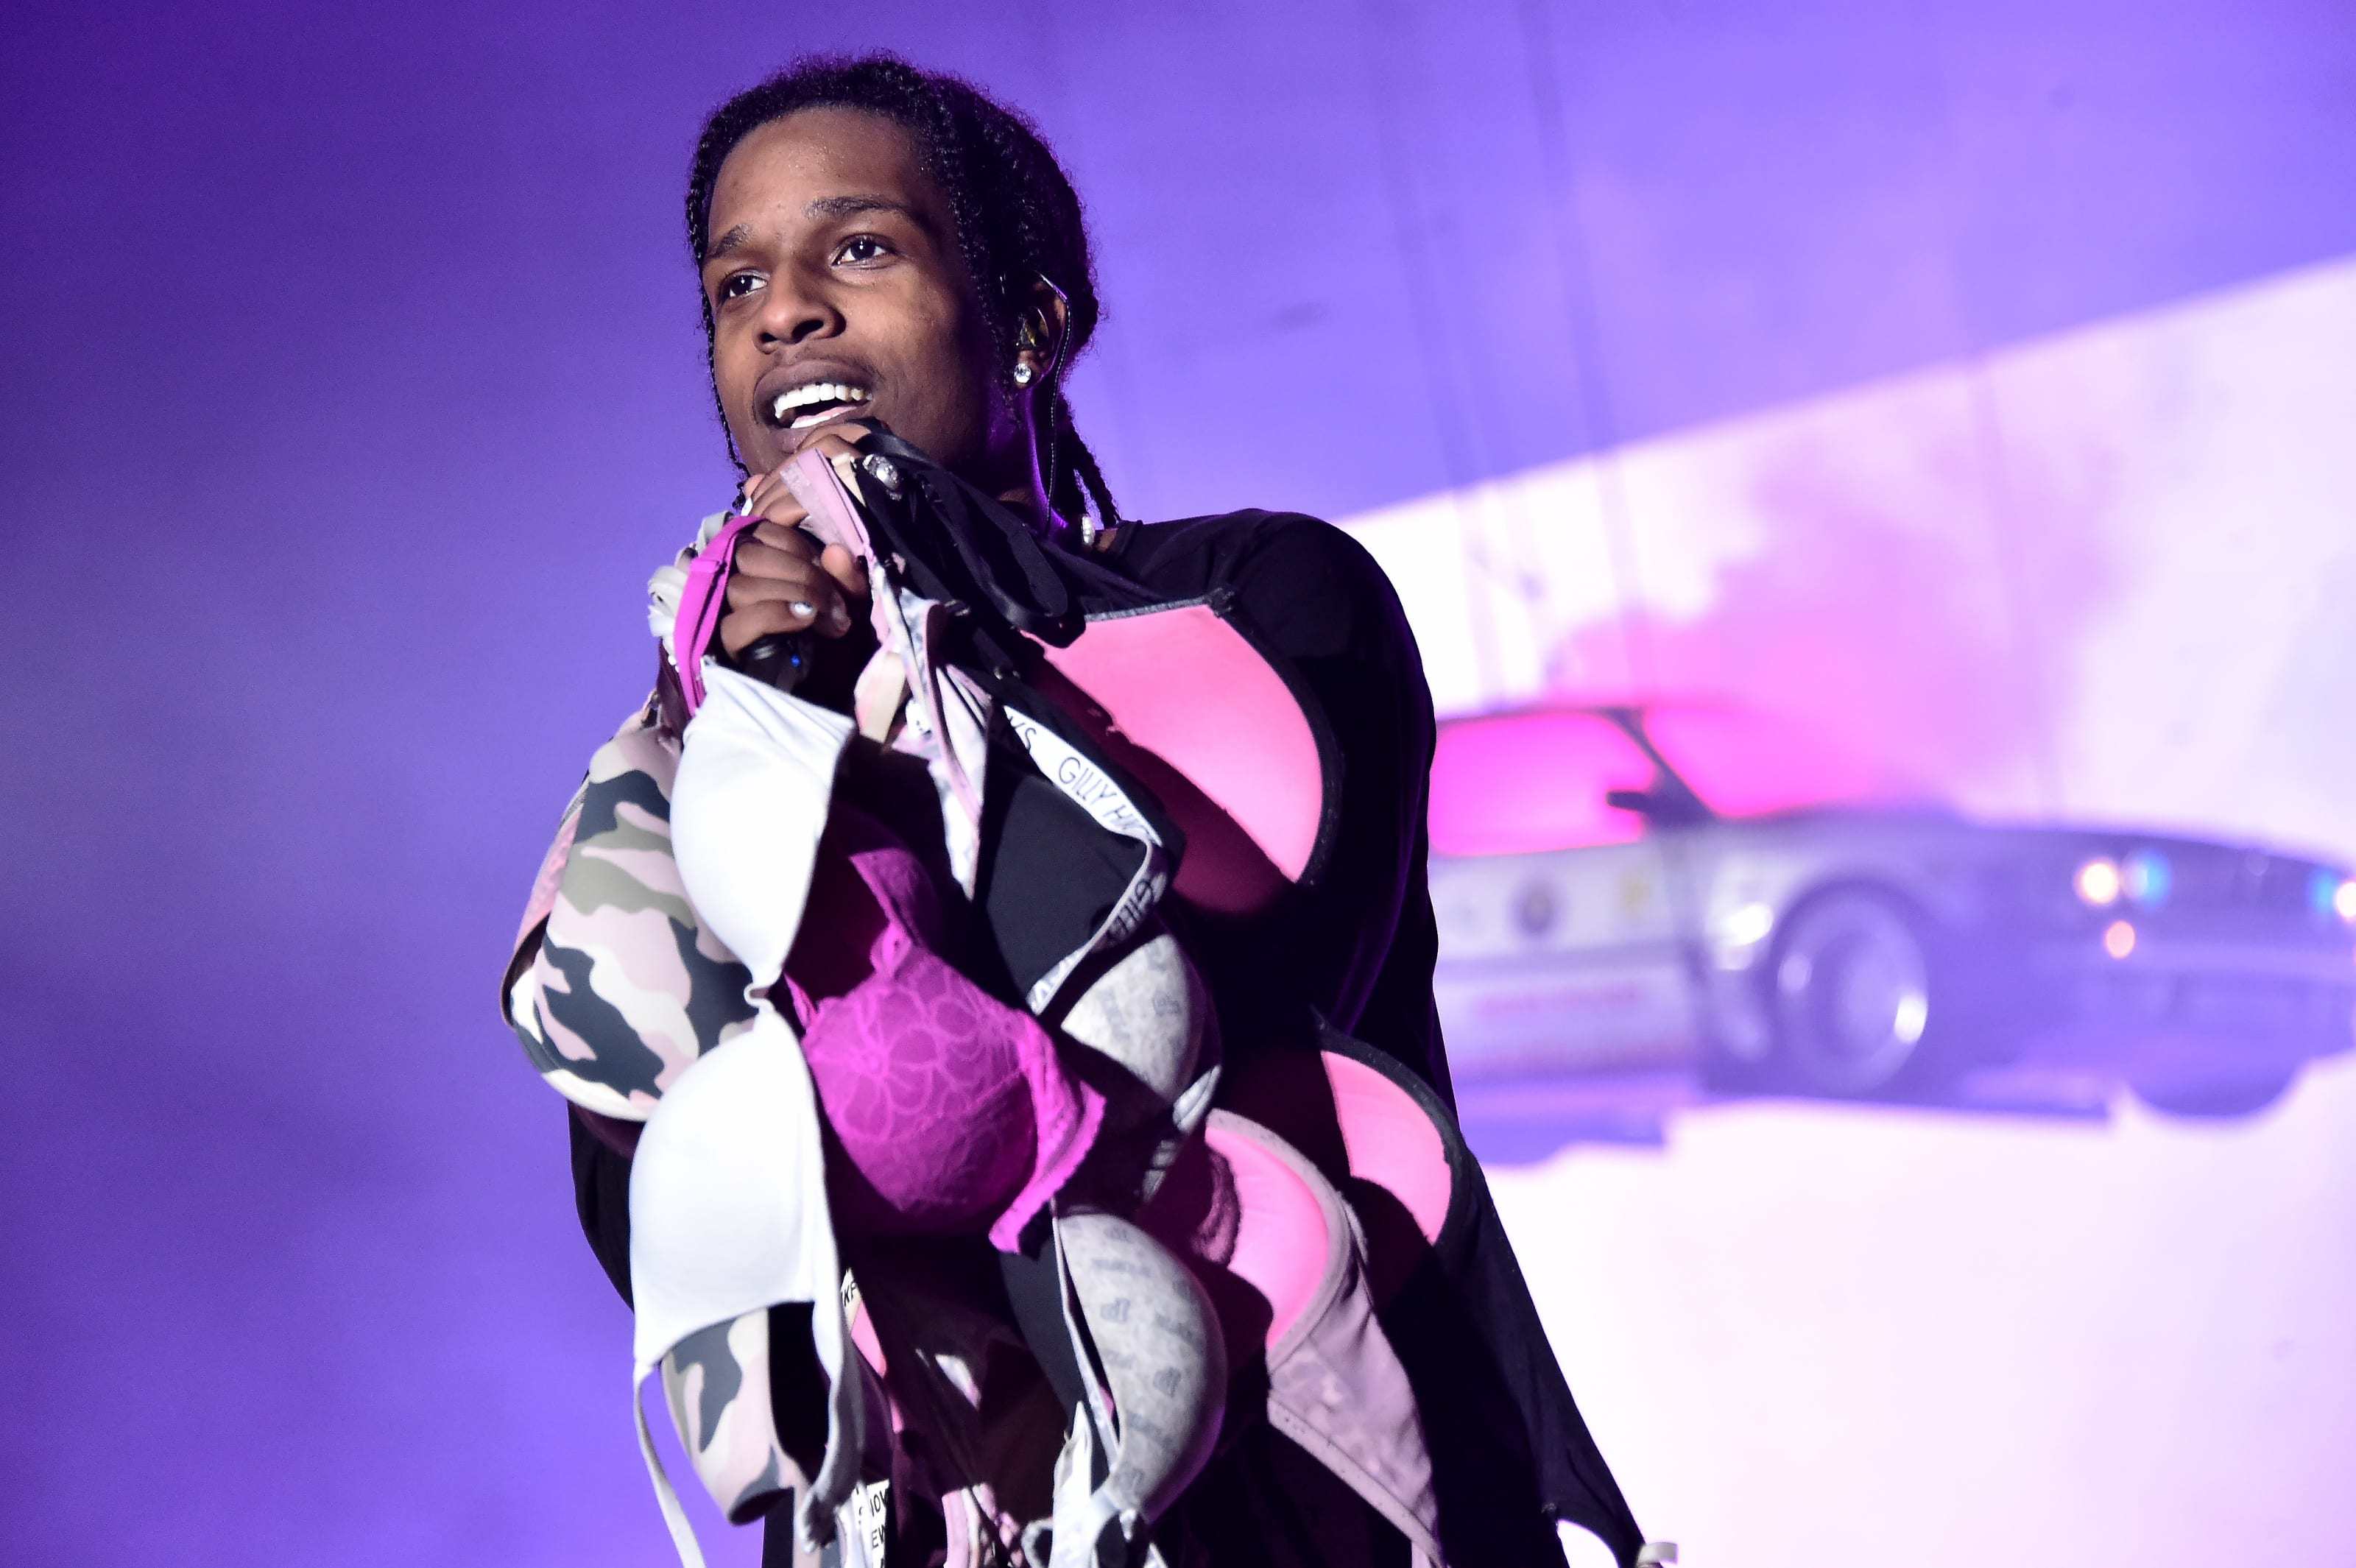 NEW YORK, NEW YORK - OCTOBER 13: A$AP Rocky (Photo by Steven Ferdman/Getty Images) From Cam'ron to Rocky